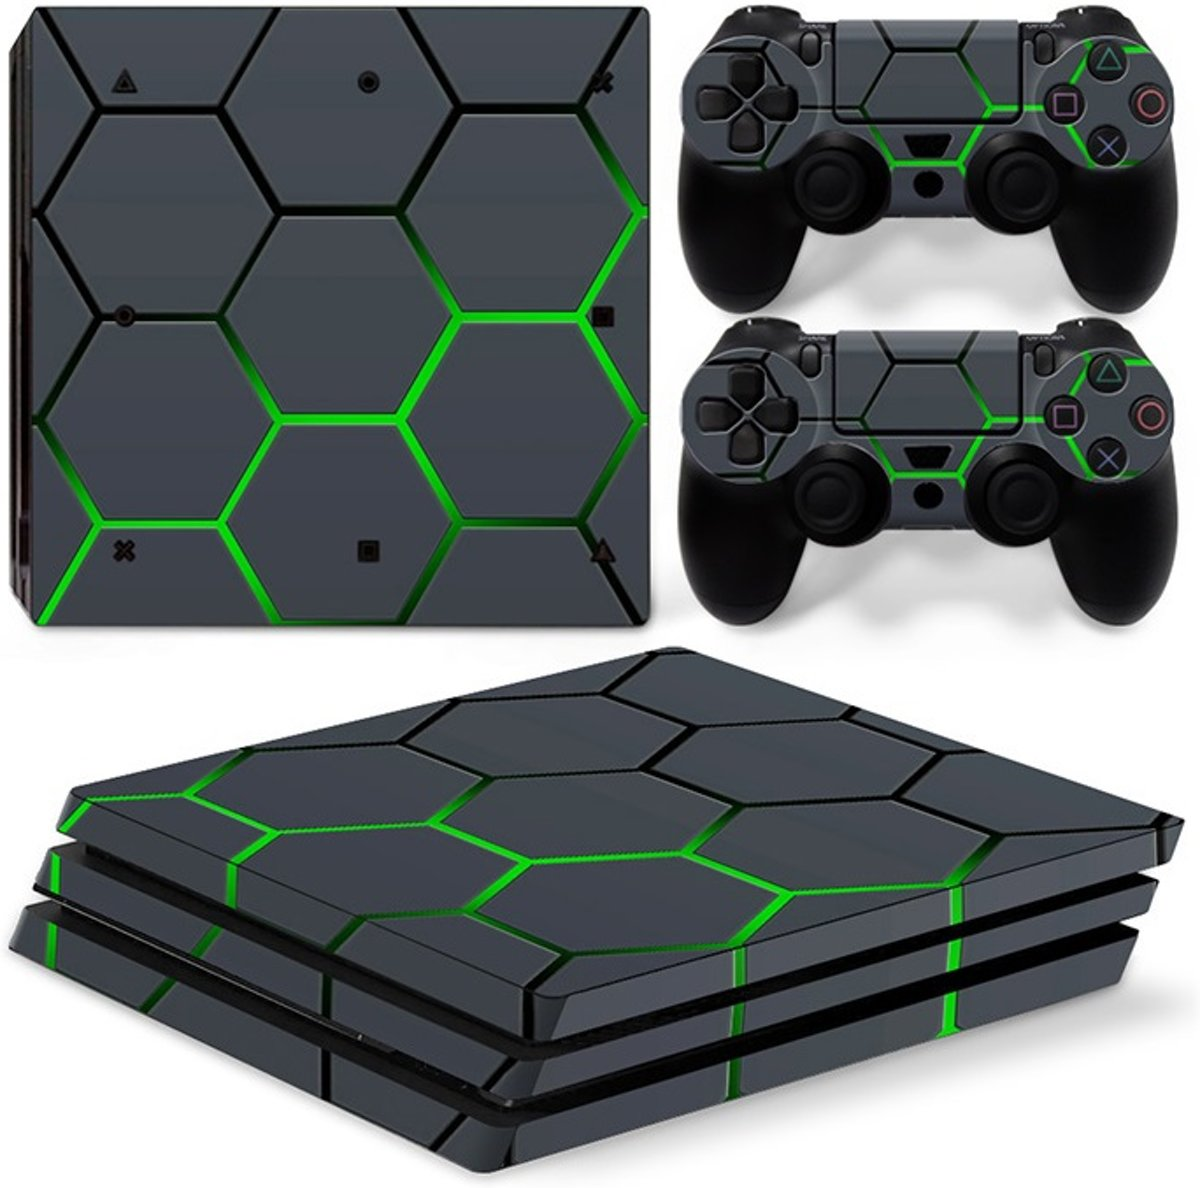 Playstation 4 Pro Sticker | Playstation 4 Pro Console Skin | Green Black Boxes | Playstation 4 Pro Groenblauwe Vierkantjes Skin Sticker | Console Skin + 2 Controller Skins